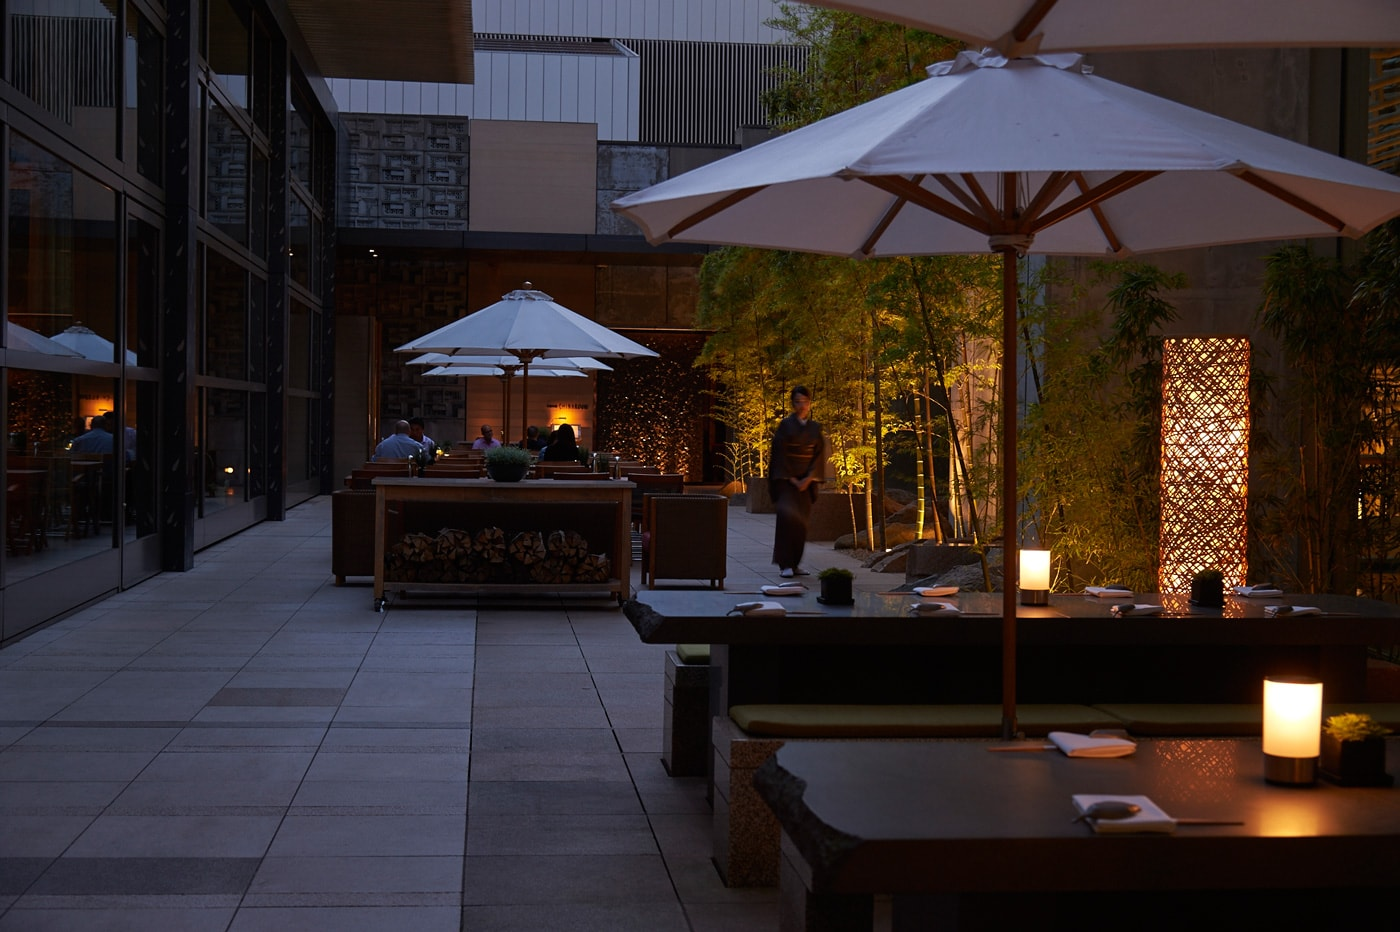 outdoor terrace at roku roku restaurants at a luxurious roppongi